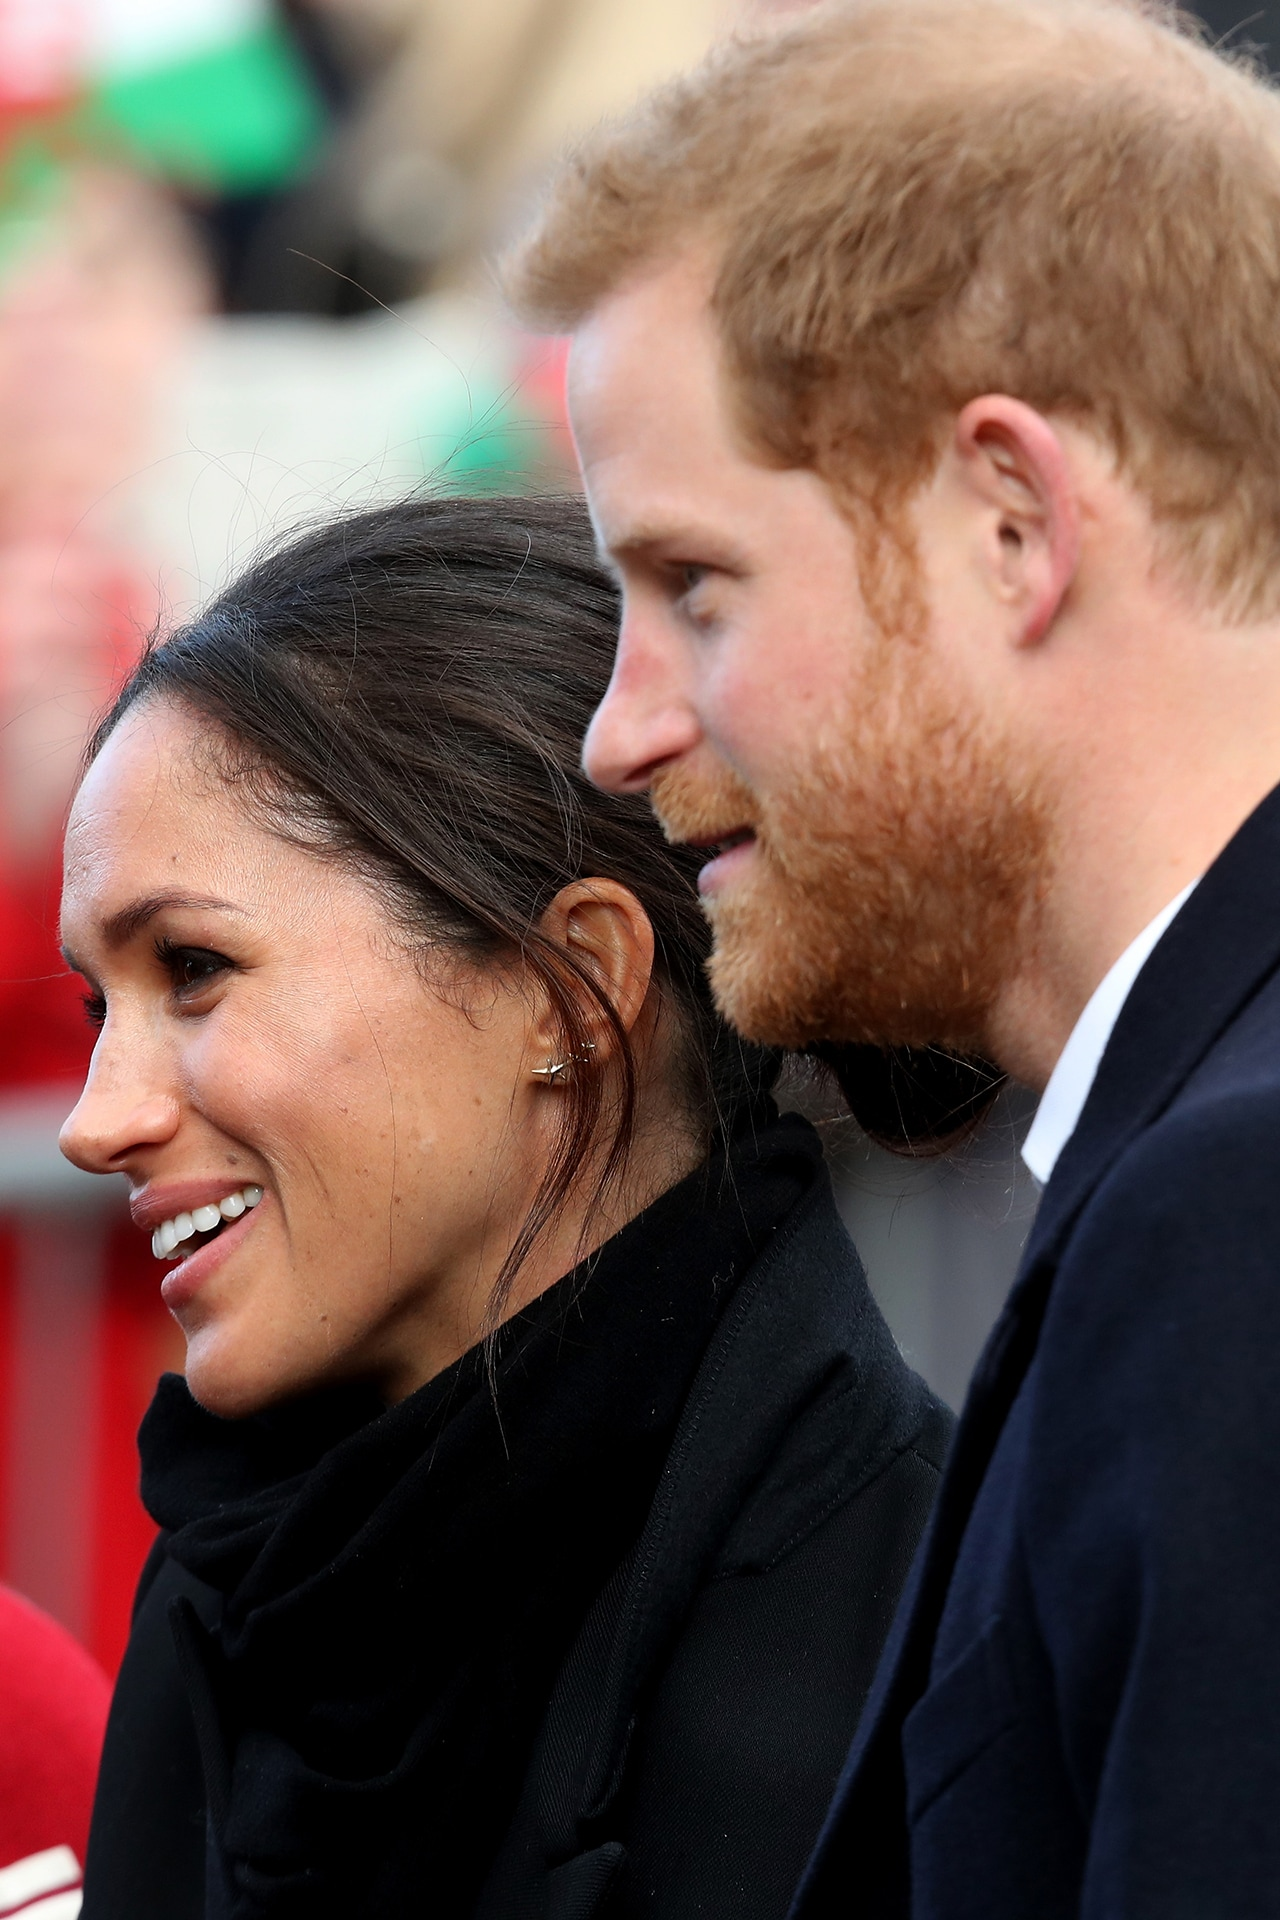 Meghan Markle and Prince Harry's star sign compatibility